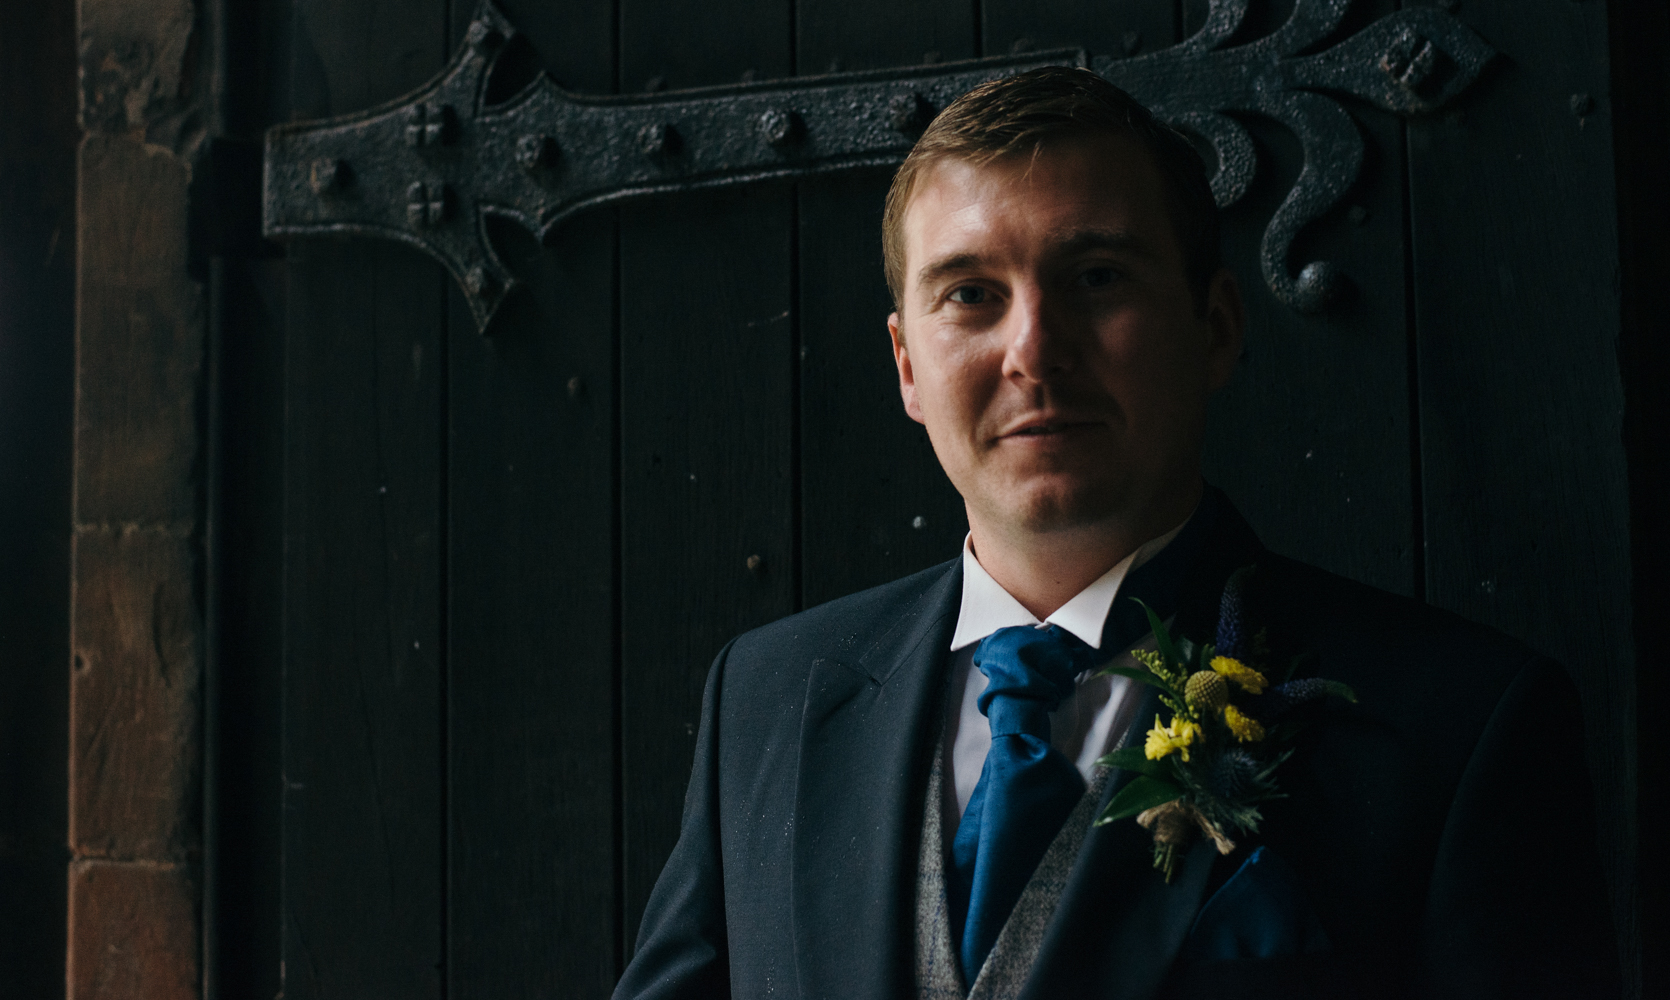 The groom portrait standing in the doorway waiting to welcome wedding guests